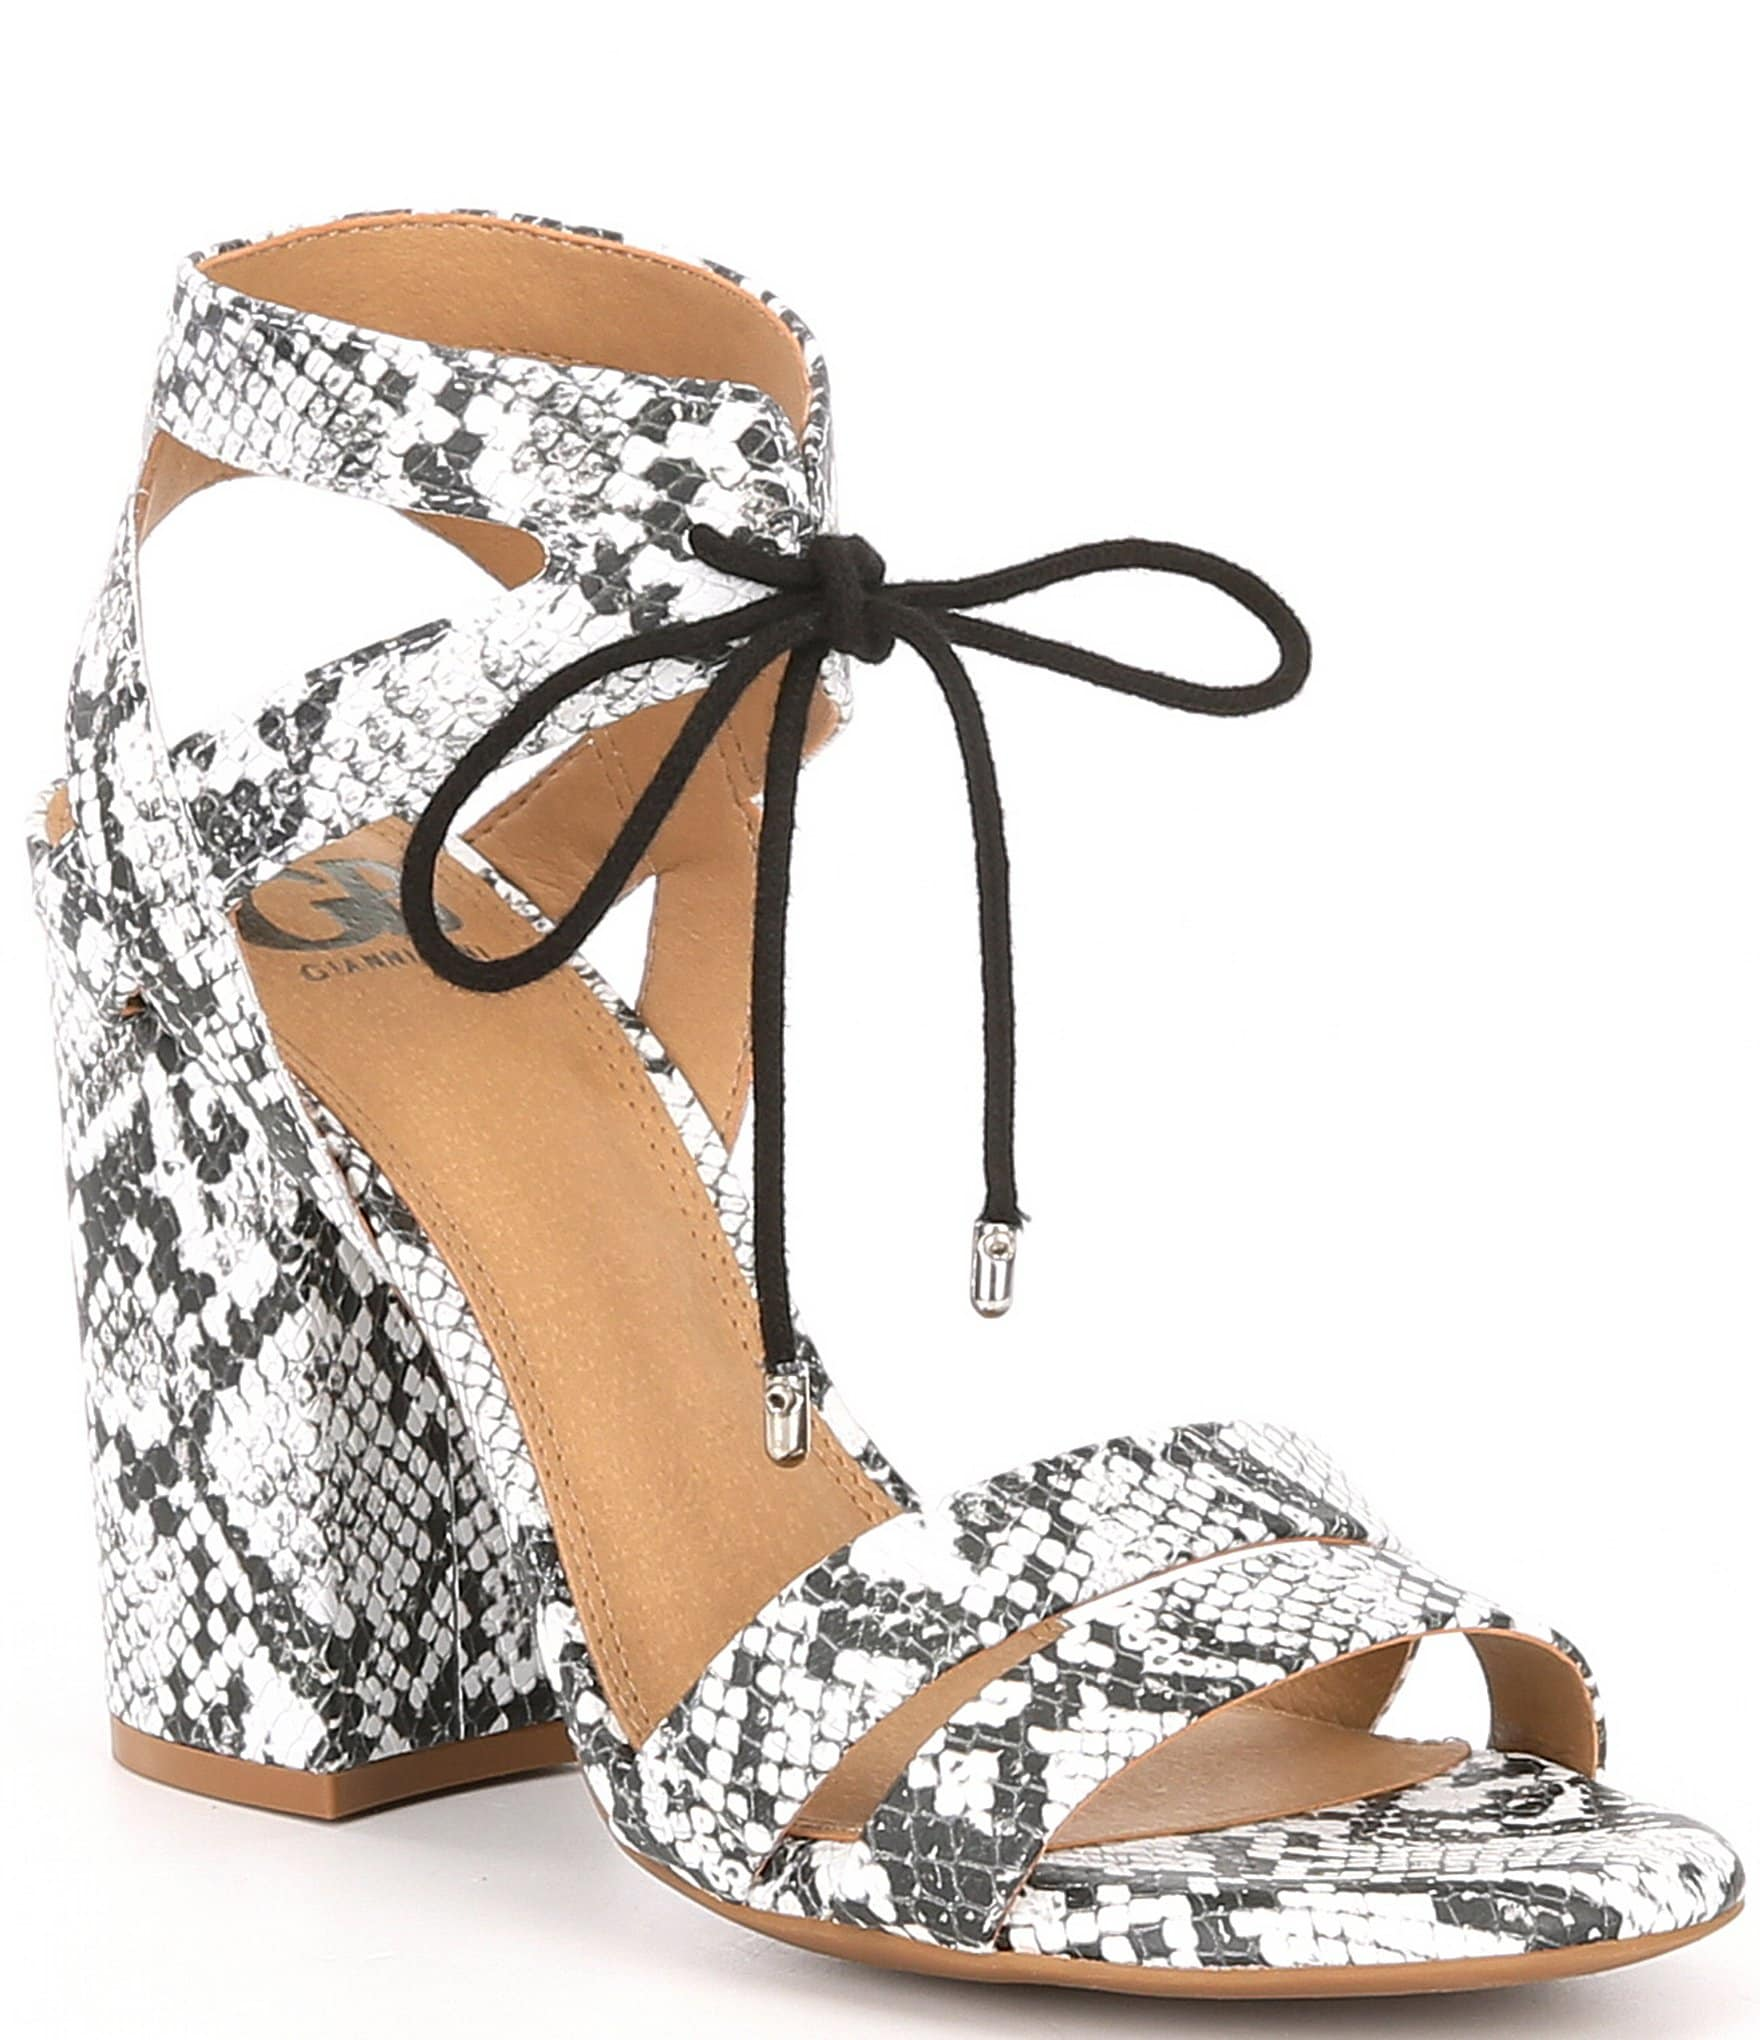 Gb After Hours Strappy Snake Print Leather Block Heel Sandals Dillard S Find here all the dillard's stores in denton tx. gb after hours strappy snake print leather block heel sandals dillard s